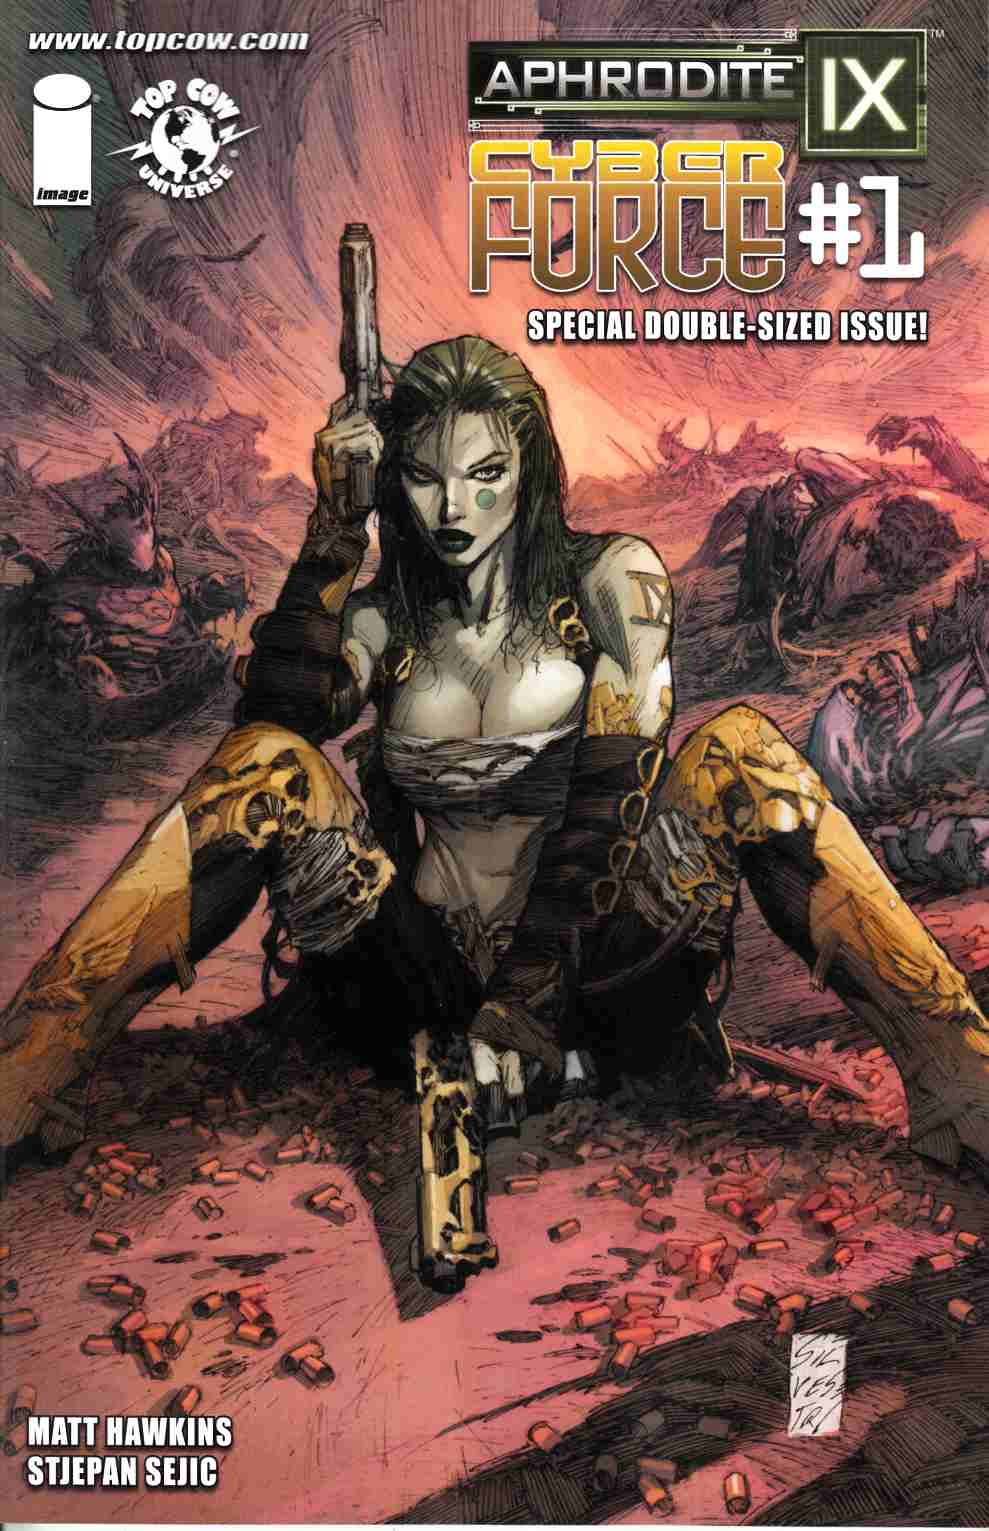 Aphrodite IX Cyber Force #1 Cover C- Silvestri [Comic]_LARGE